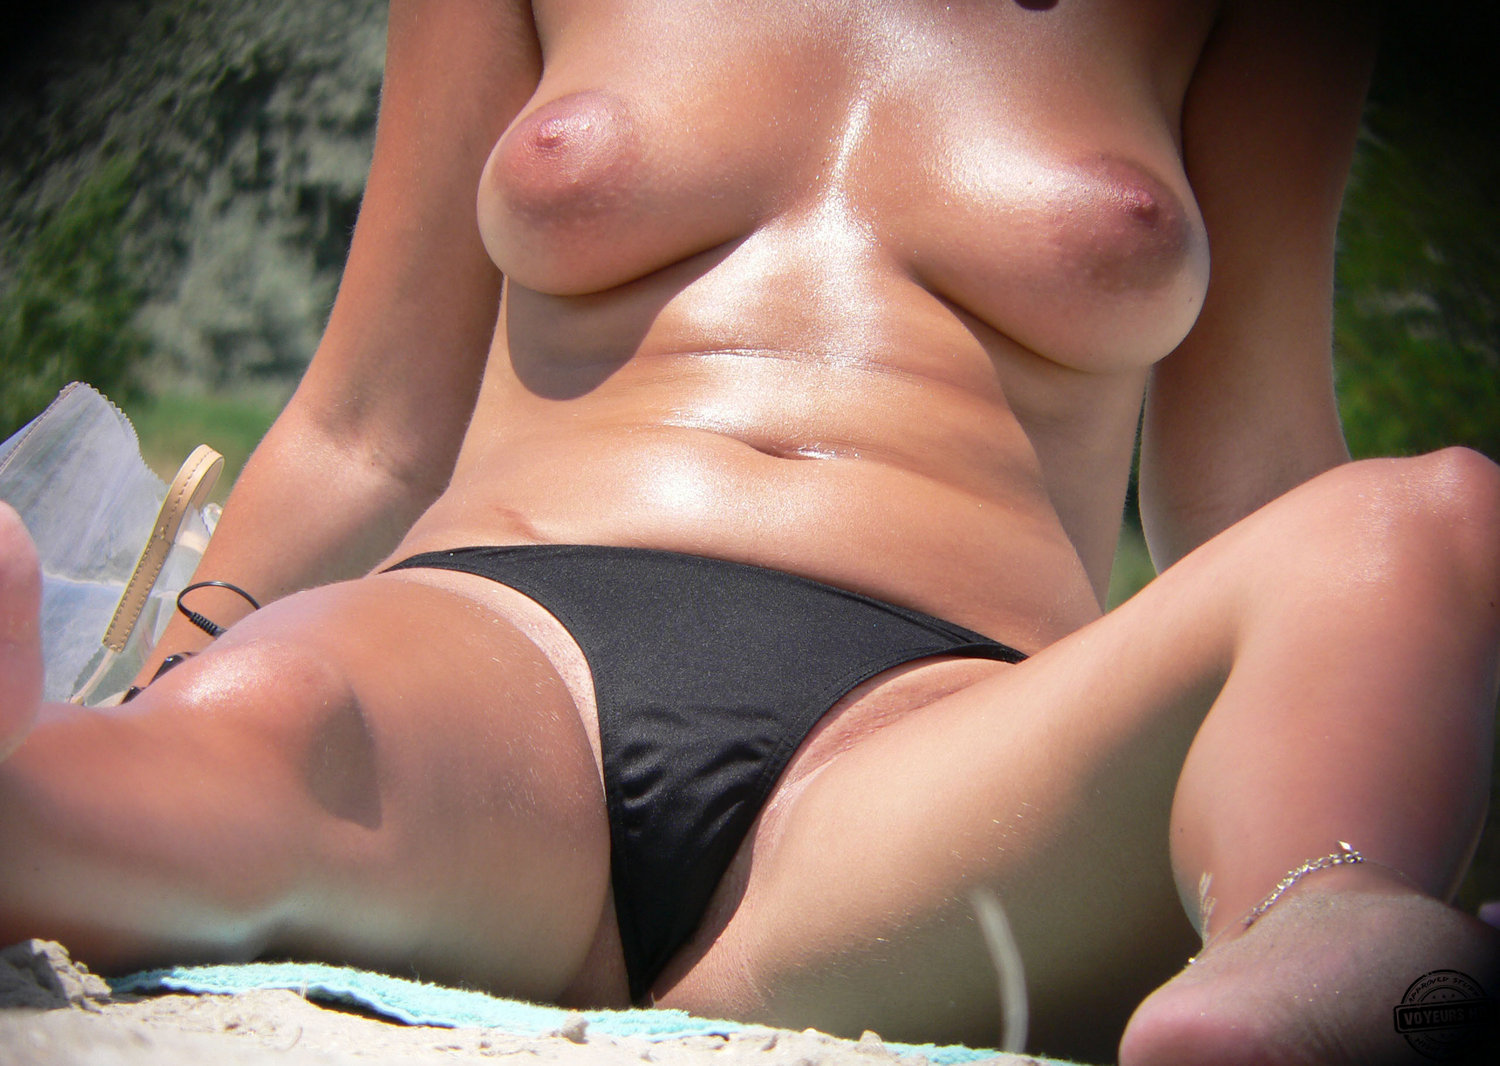 Hot Ass Bikini Girls Tanning Topless Beach Voyeur Hd Photo